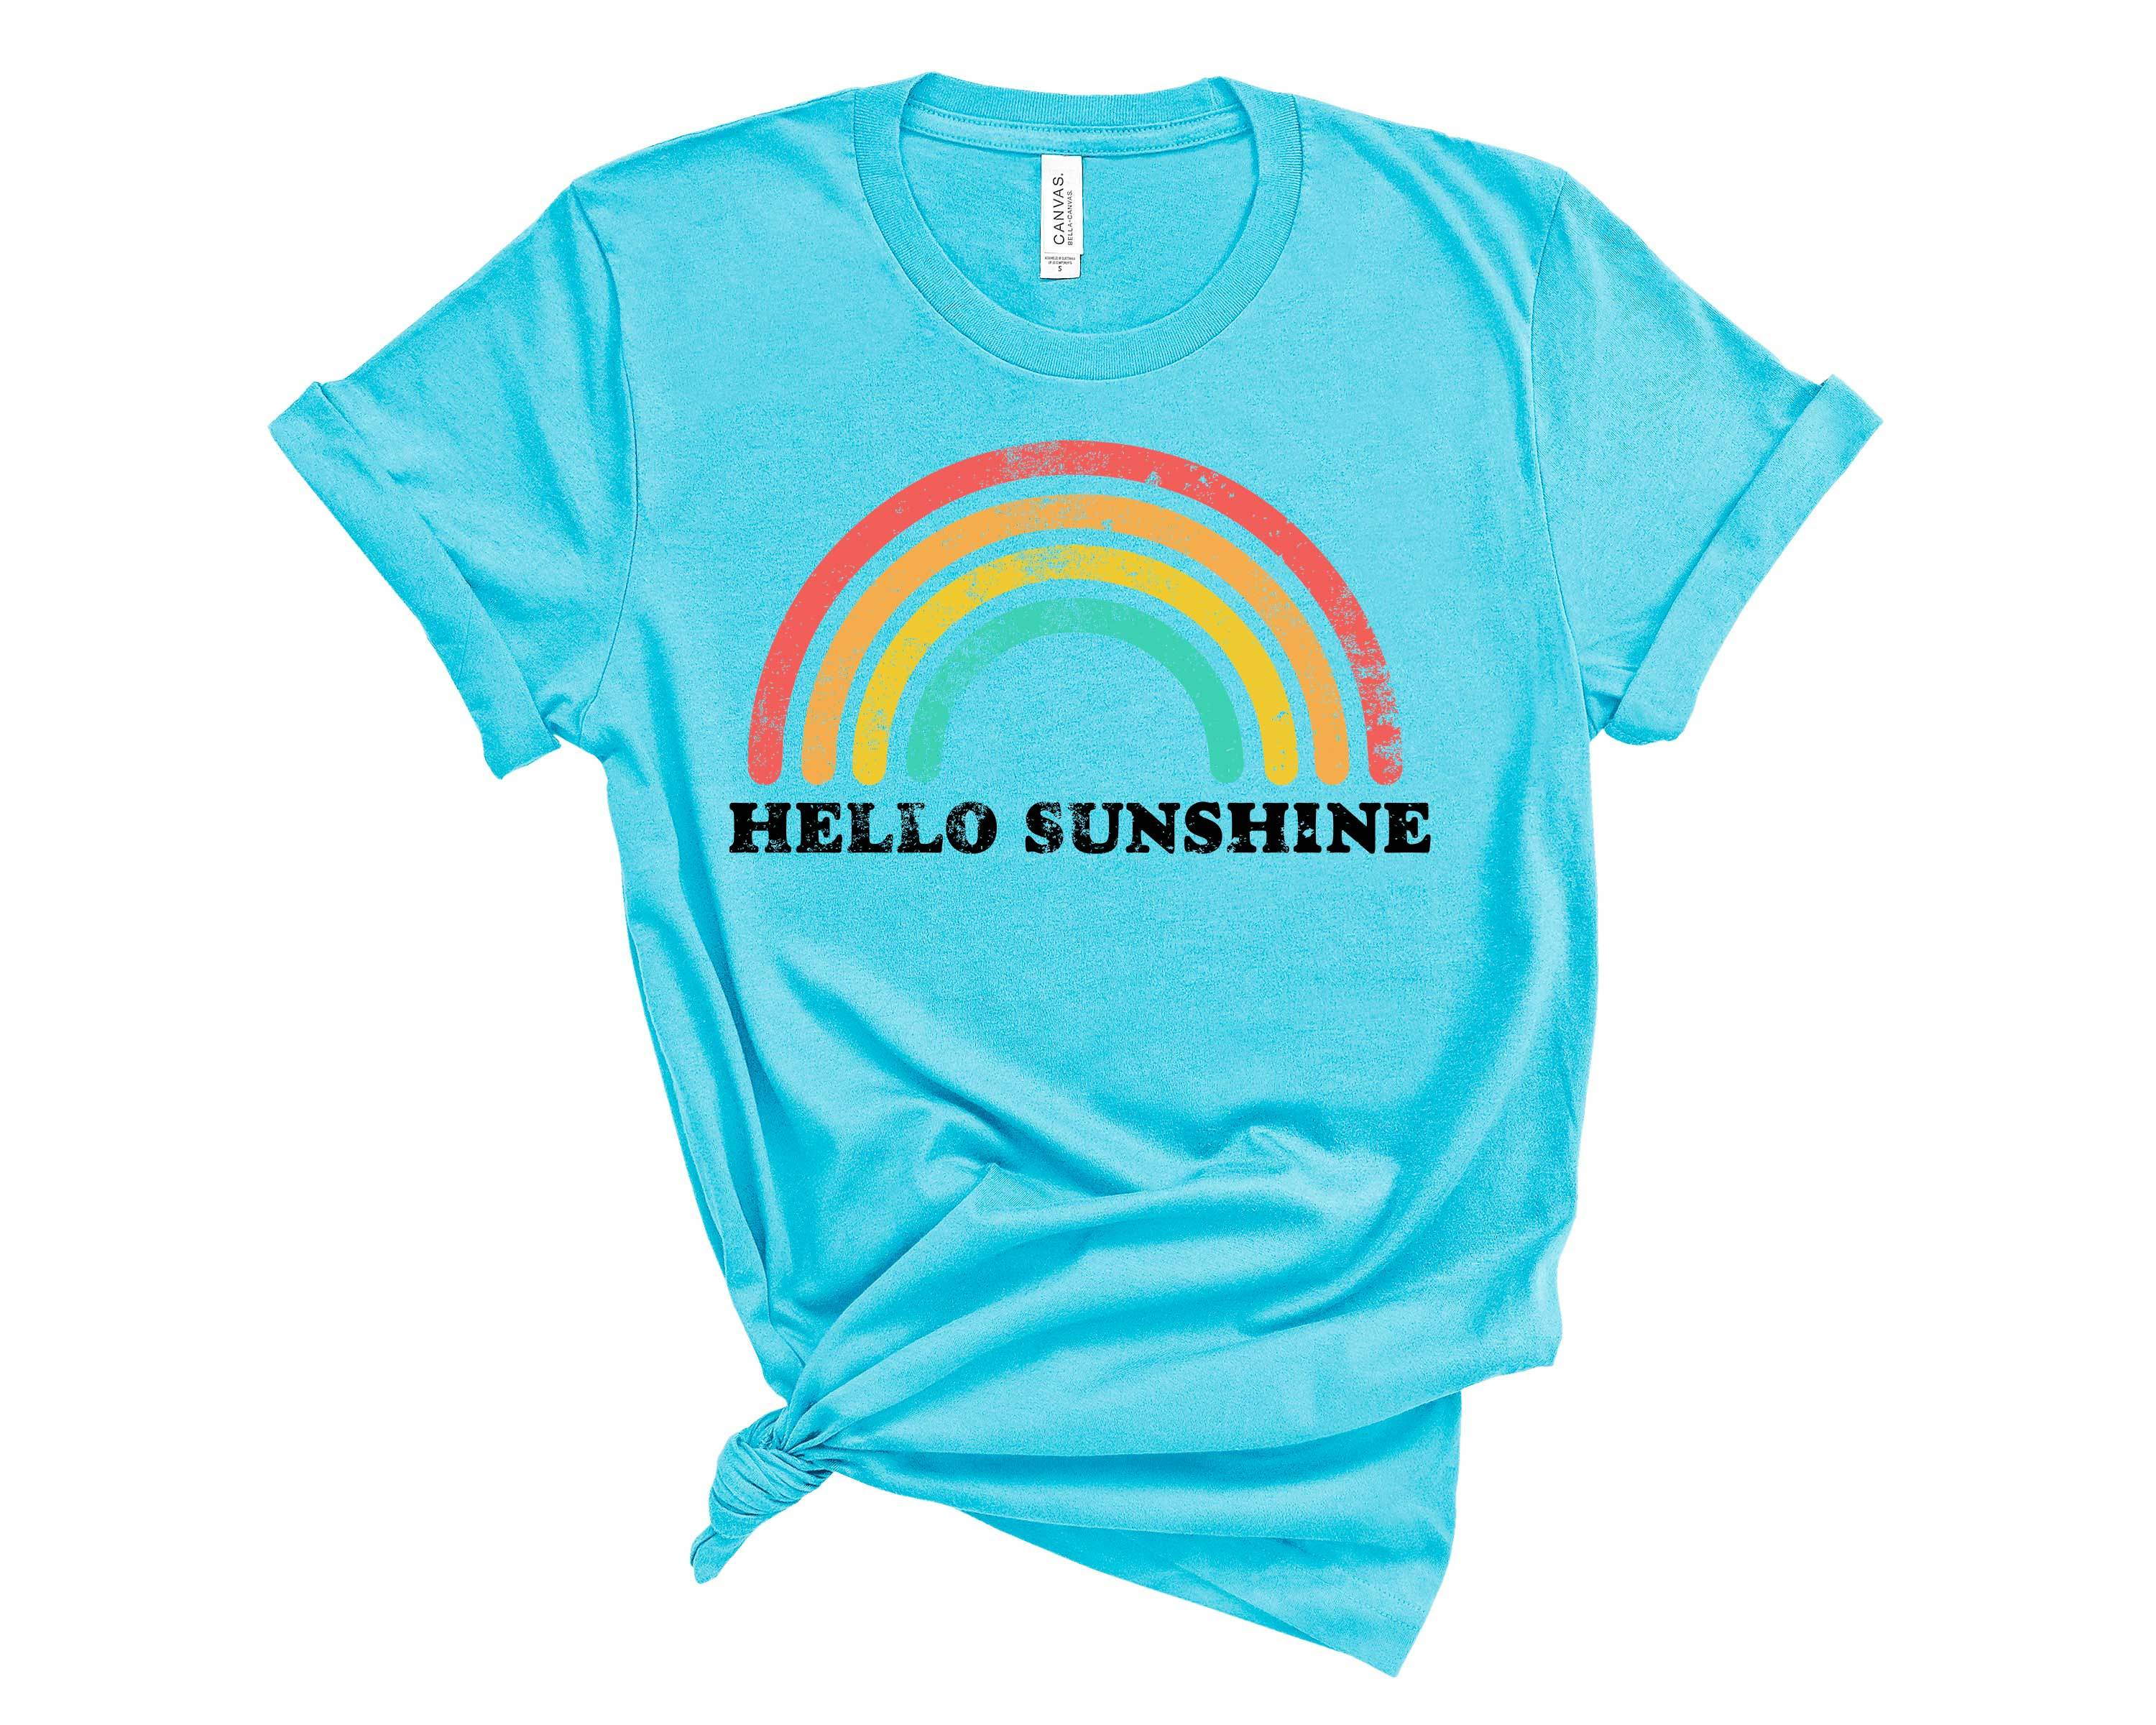 (Unisex BC 3001 Soft Tee - Lights) Hello Sunshine Retro Vintage Rainbow Graphic T-Shirt Tee BOXELS